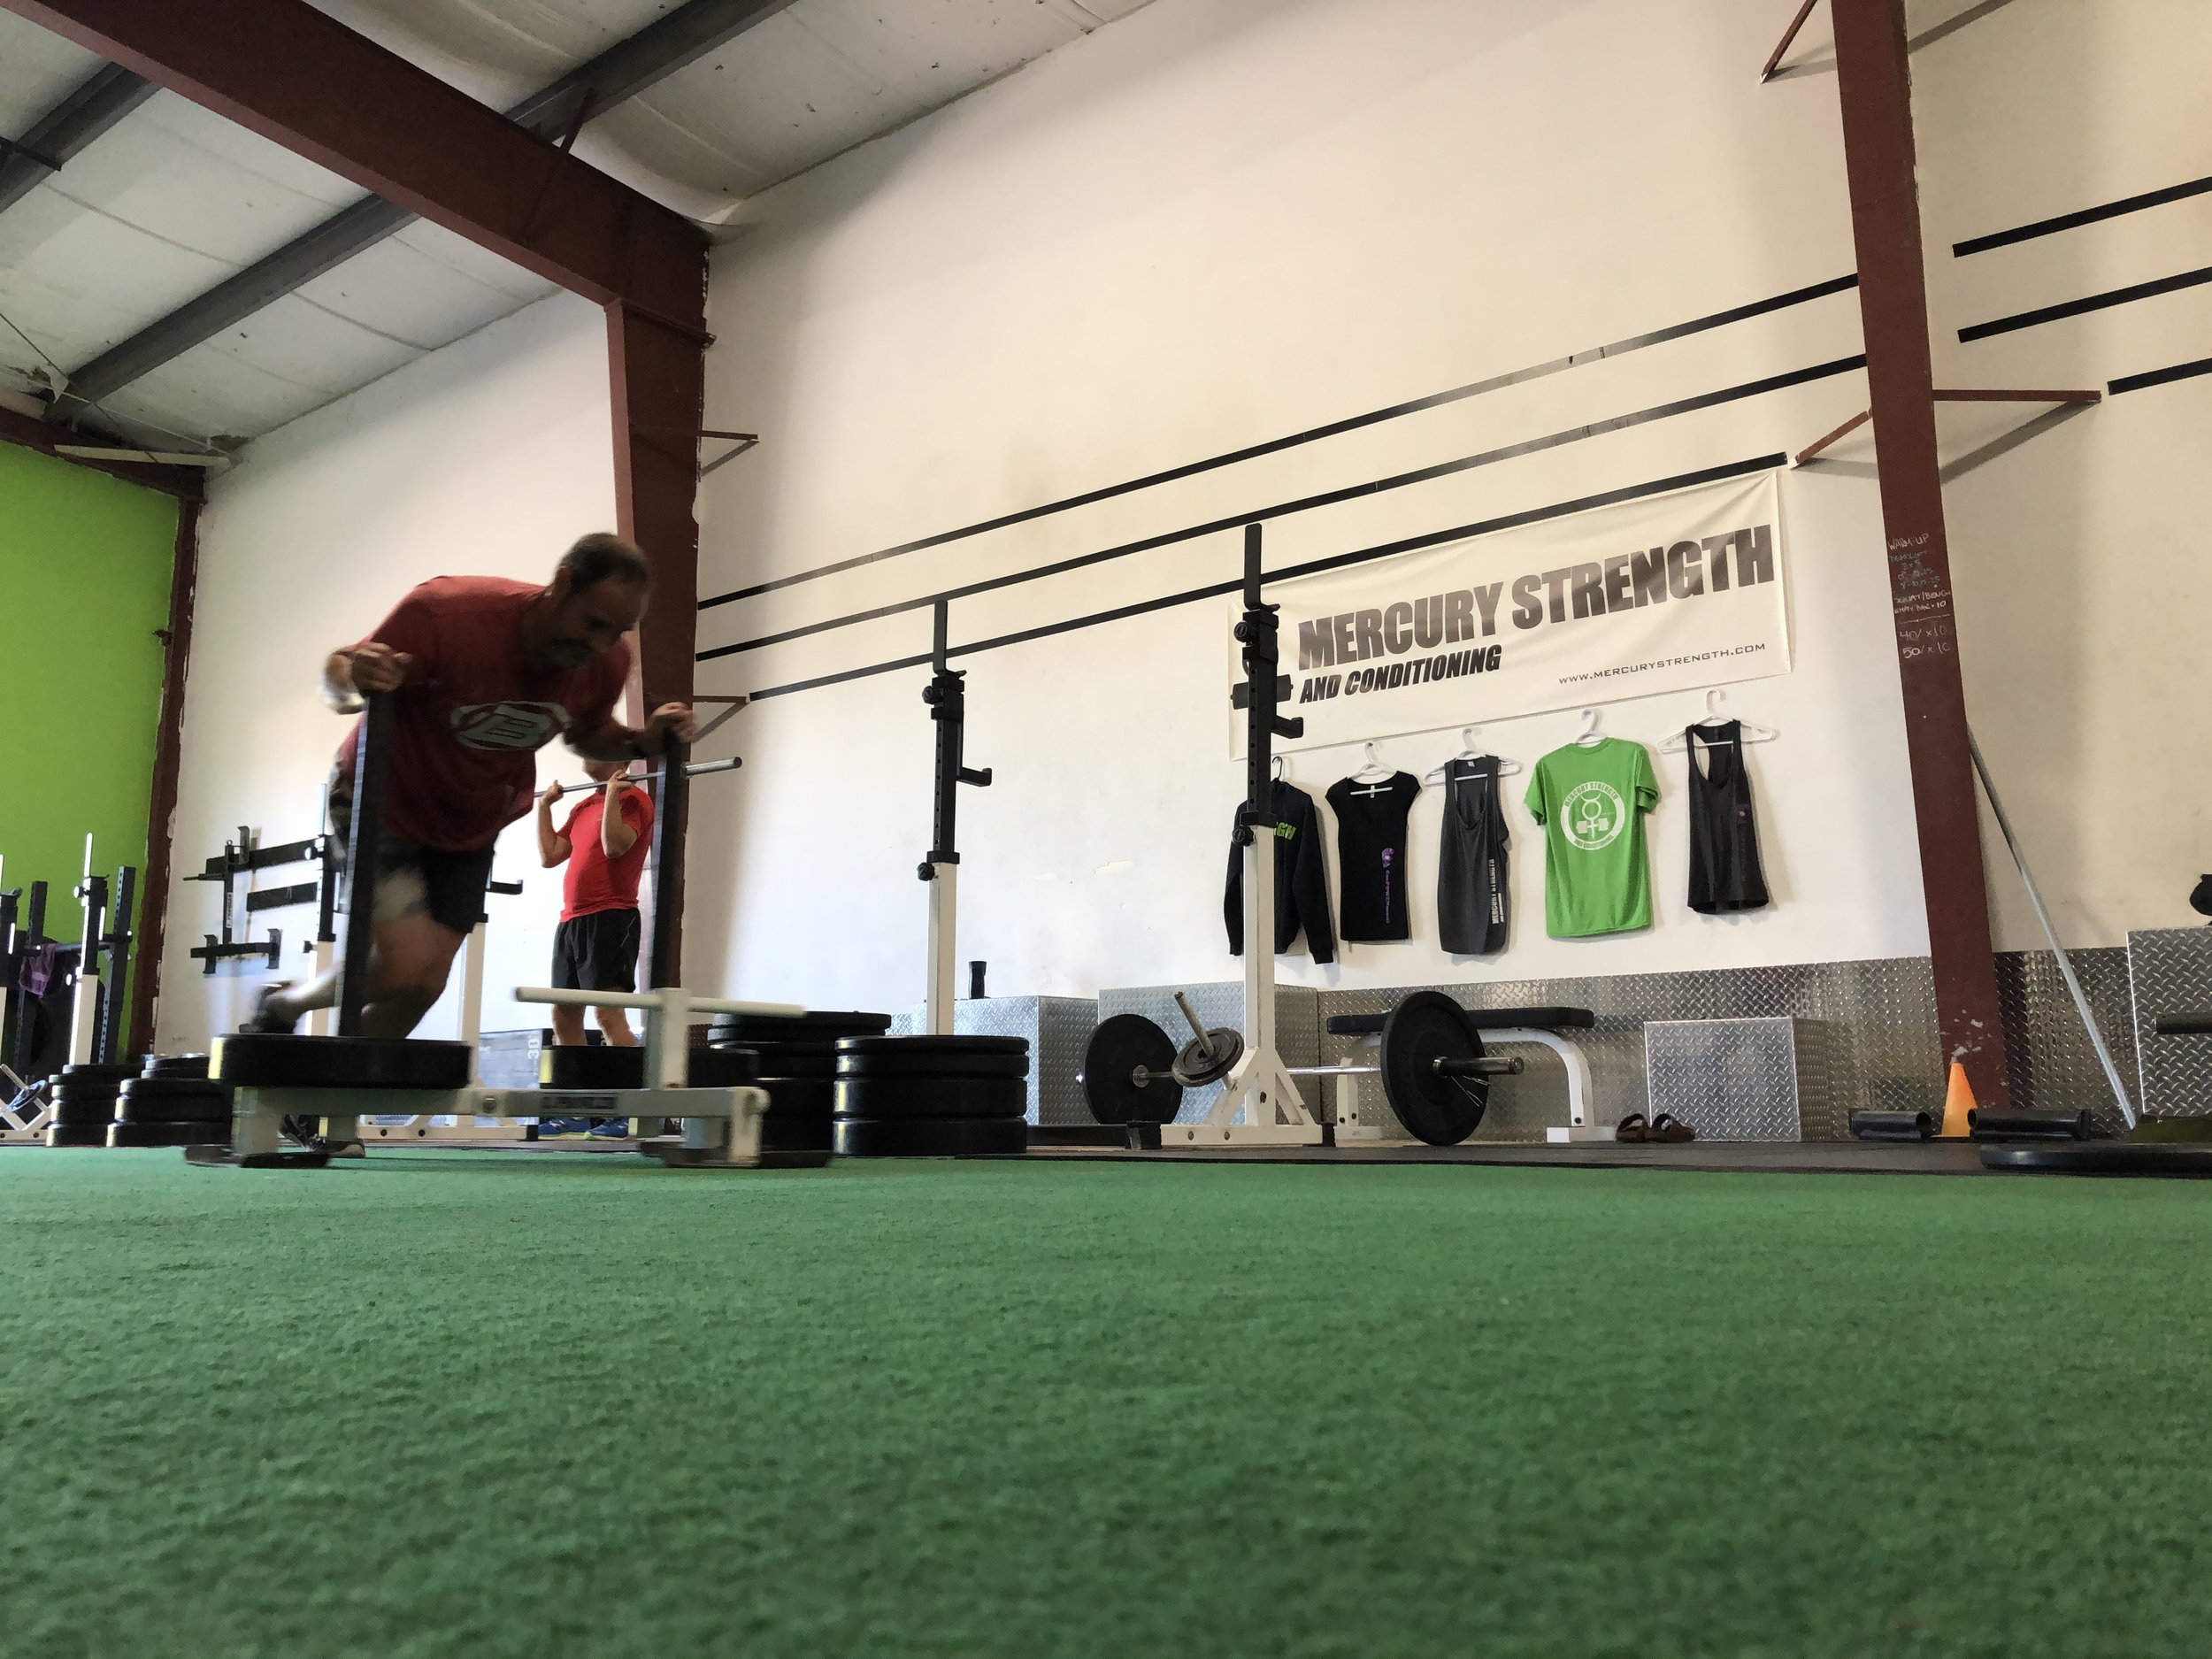 Andrew sprinting with the prowler